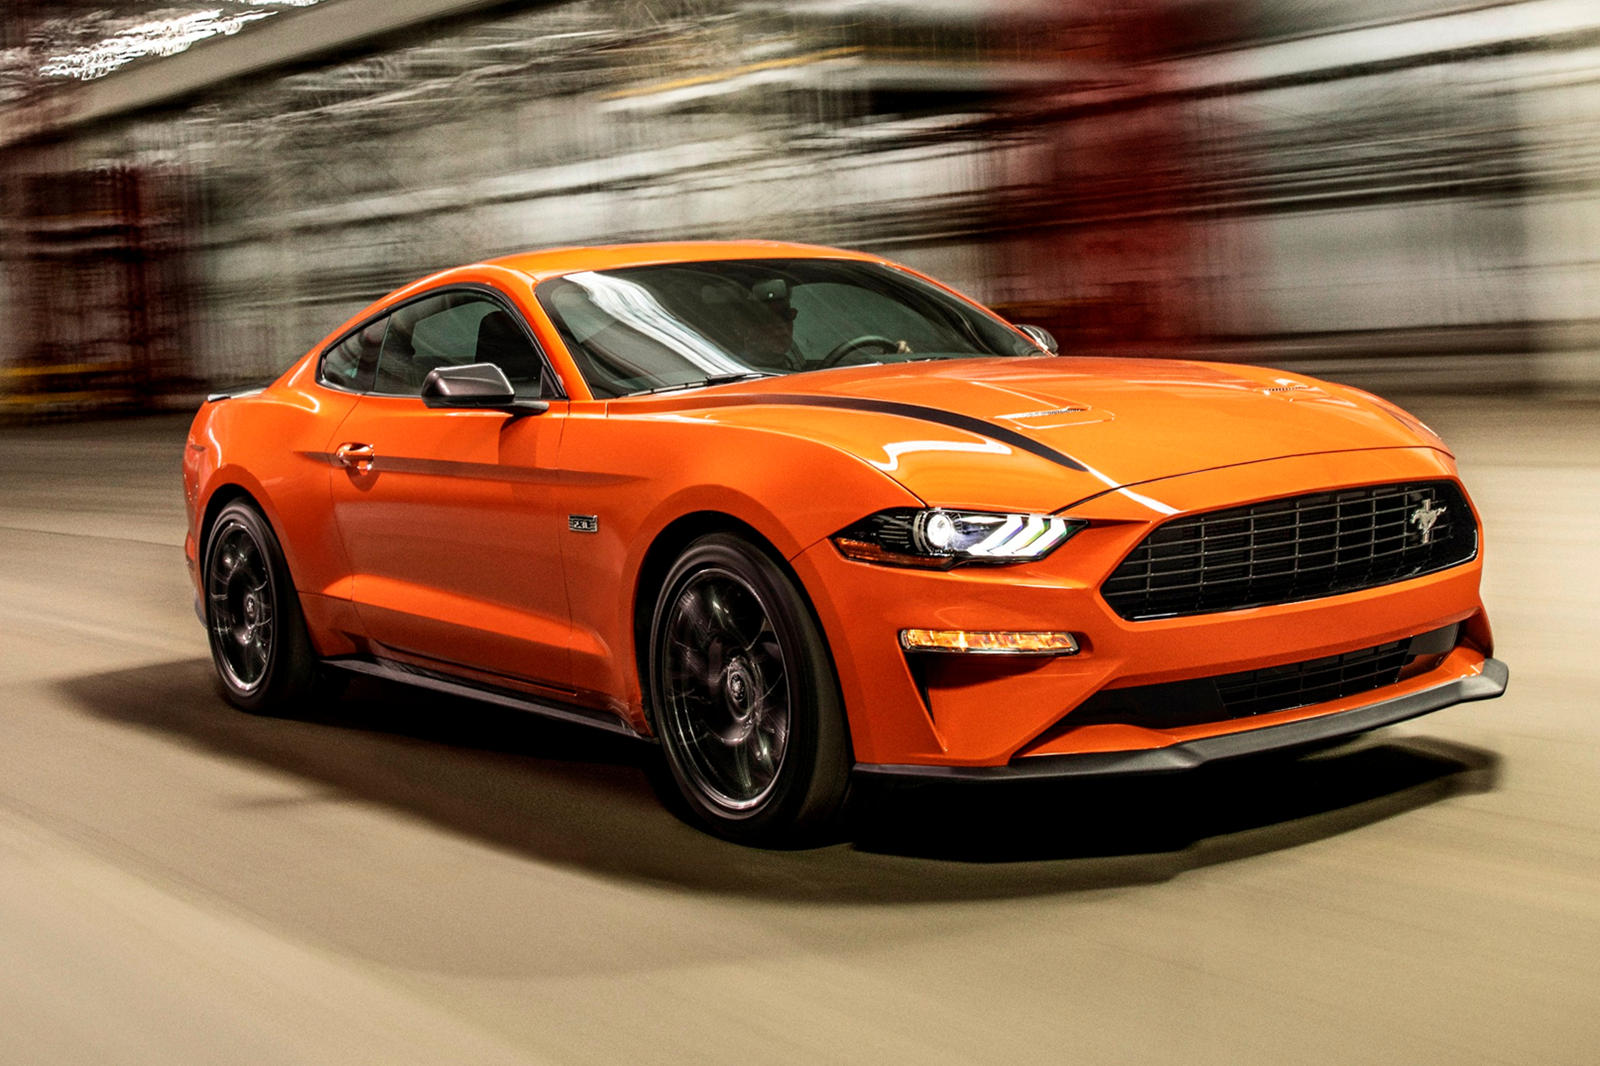 33 All New 2020 Mustang Engine